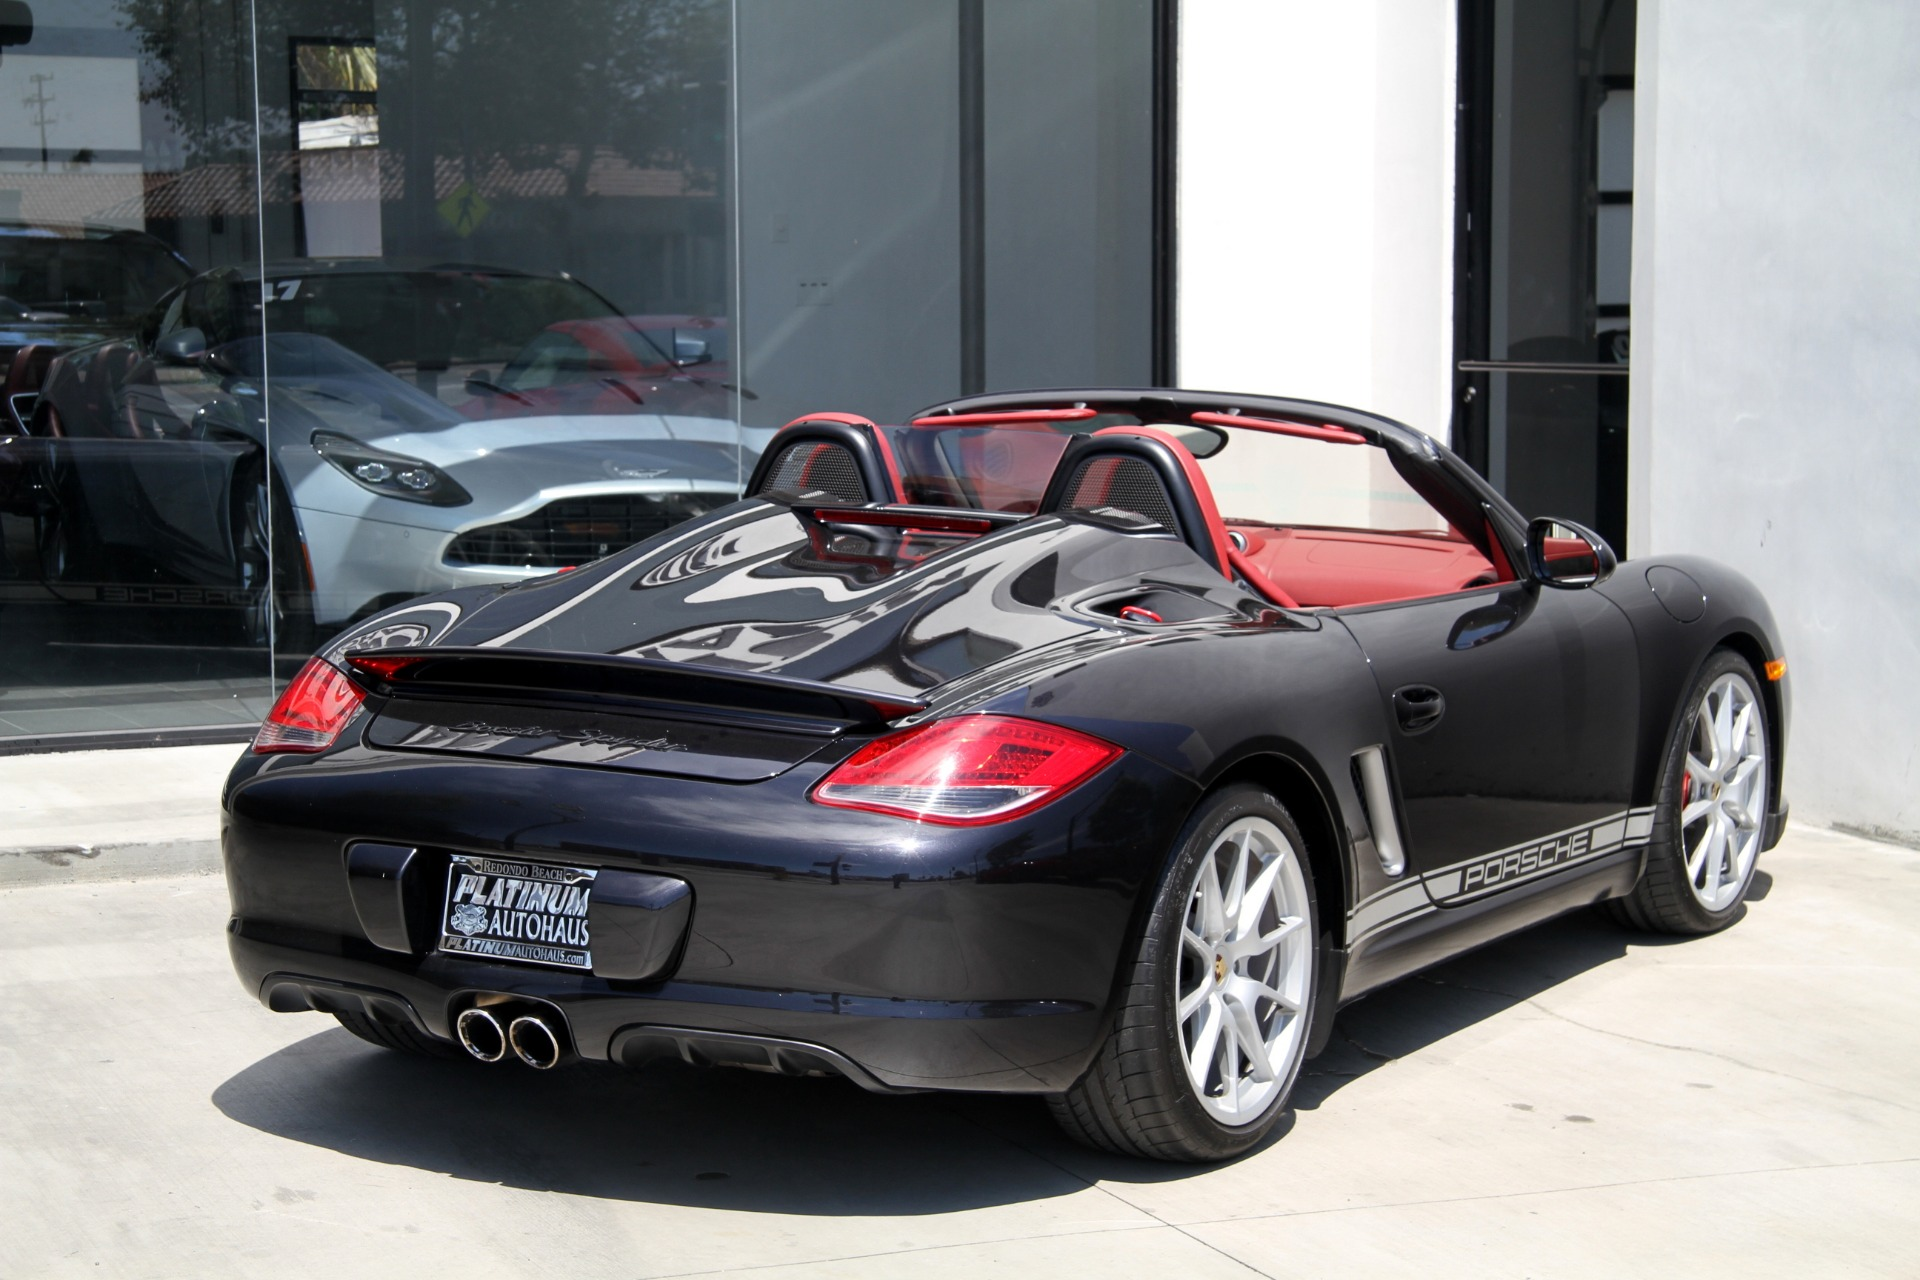 2011 Porsche Boxster Spyder Stock 745621 For Sale Near